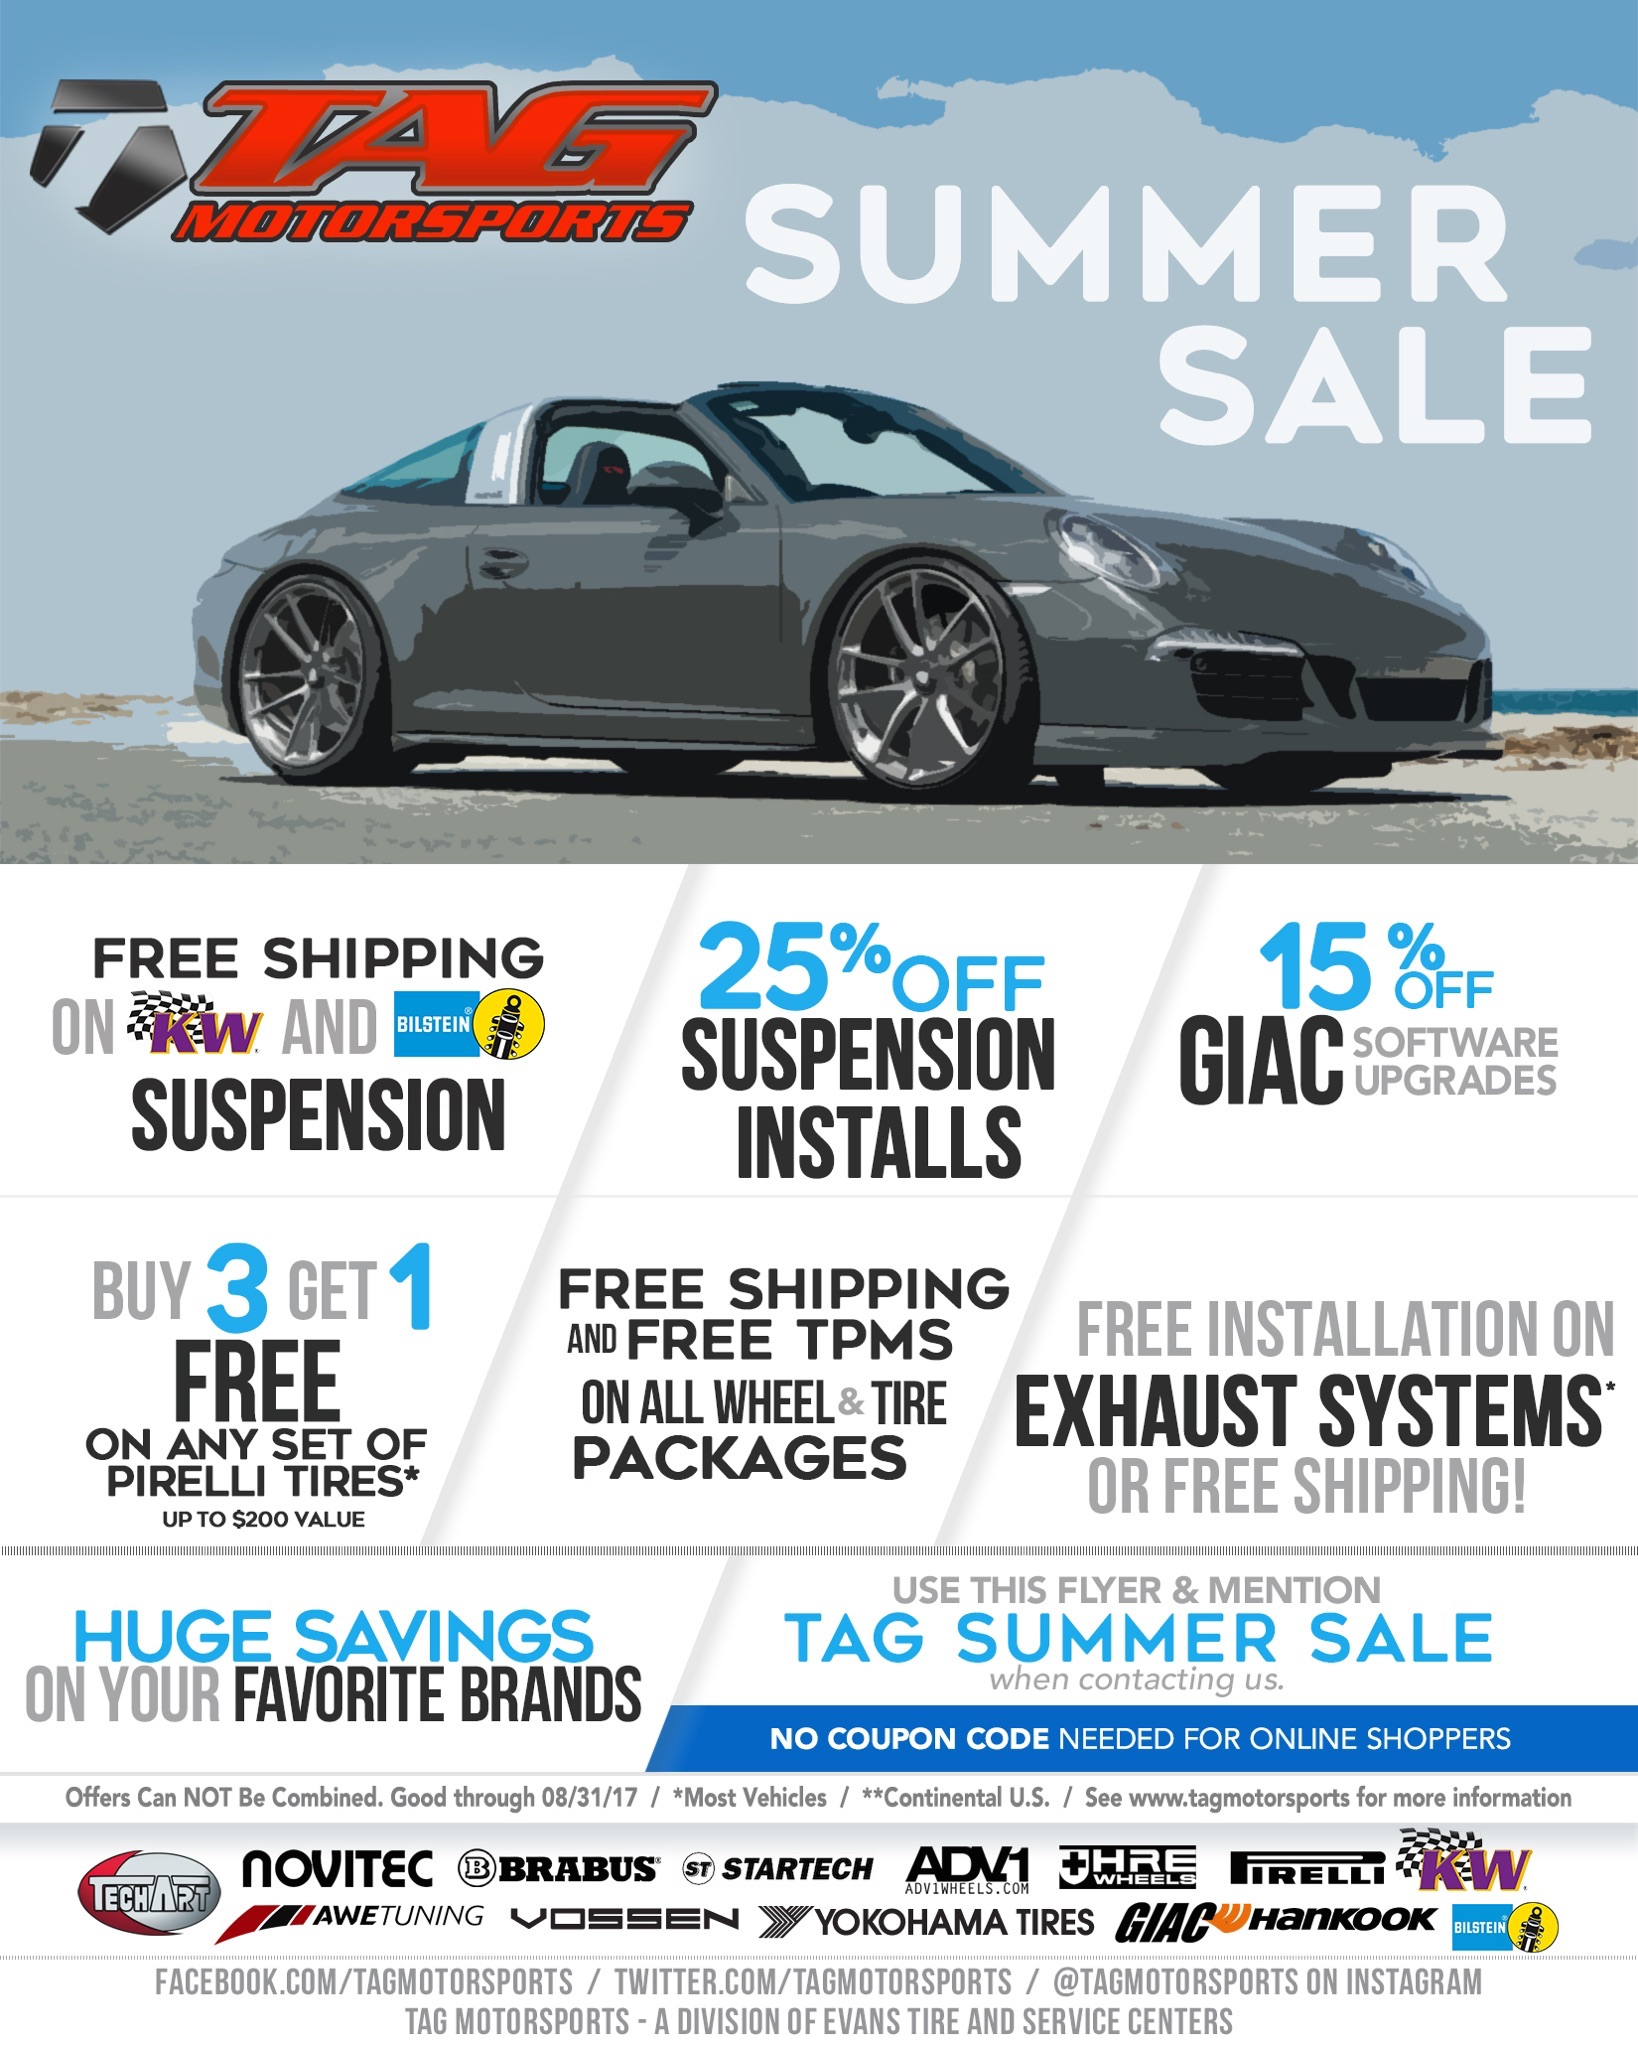 TAG 2017 Summer Sale is HERE!